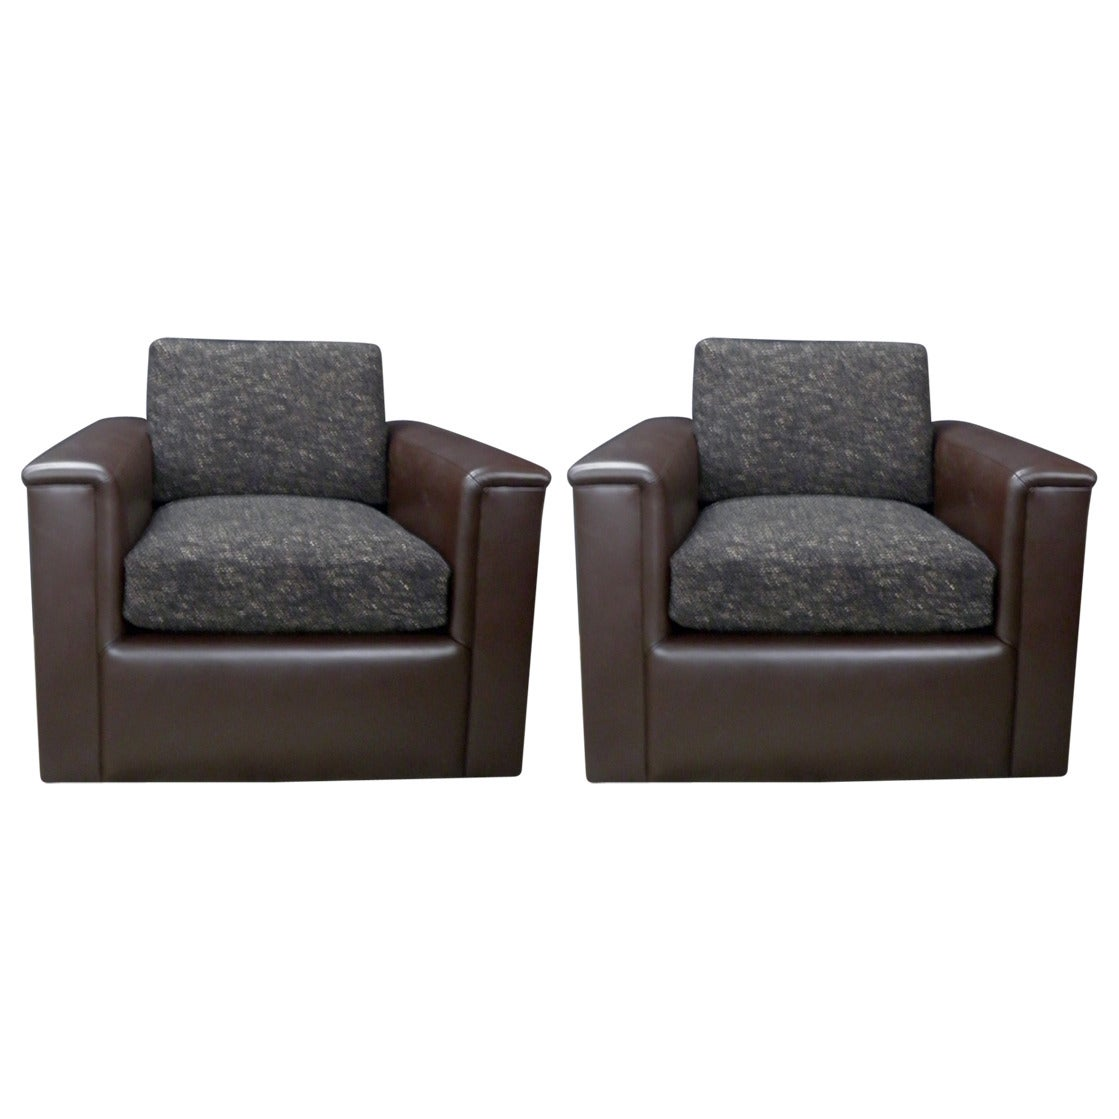 Fully Refurbished Pair Of Very Comfortable Club Chairs On Casters And Swivels For